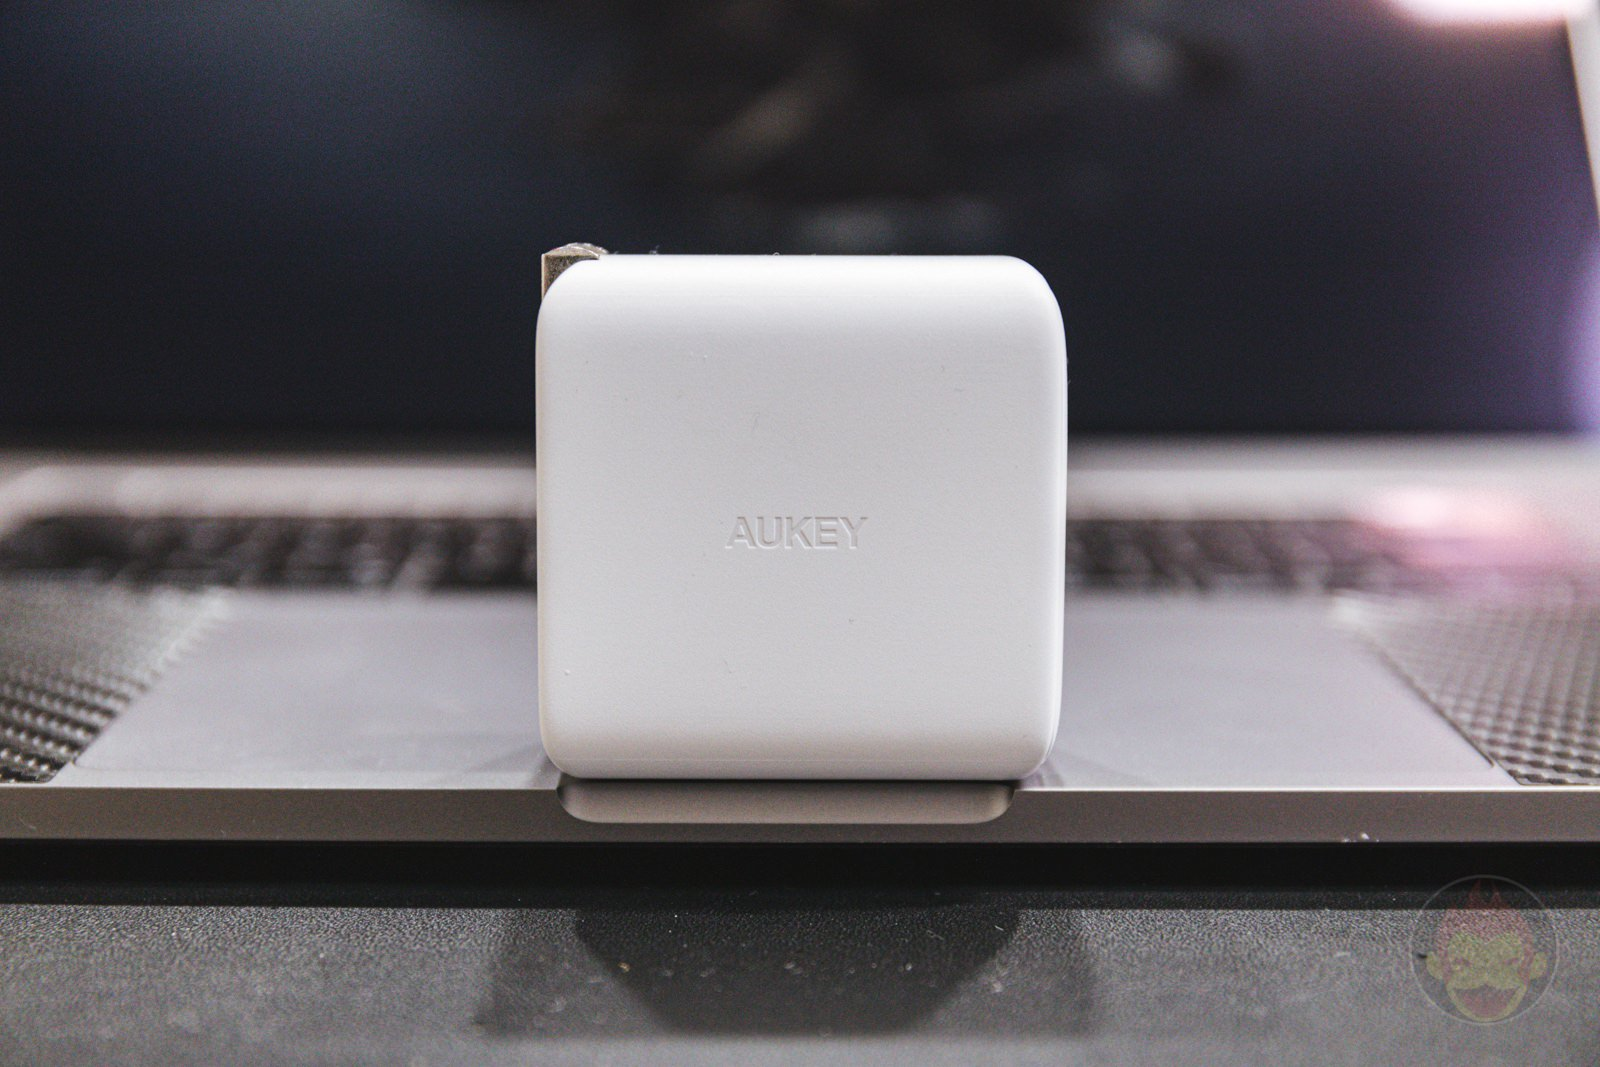 AUKEY PA B5 USBC Charger Review 07